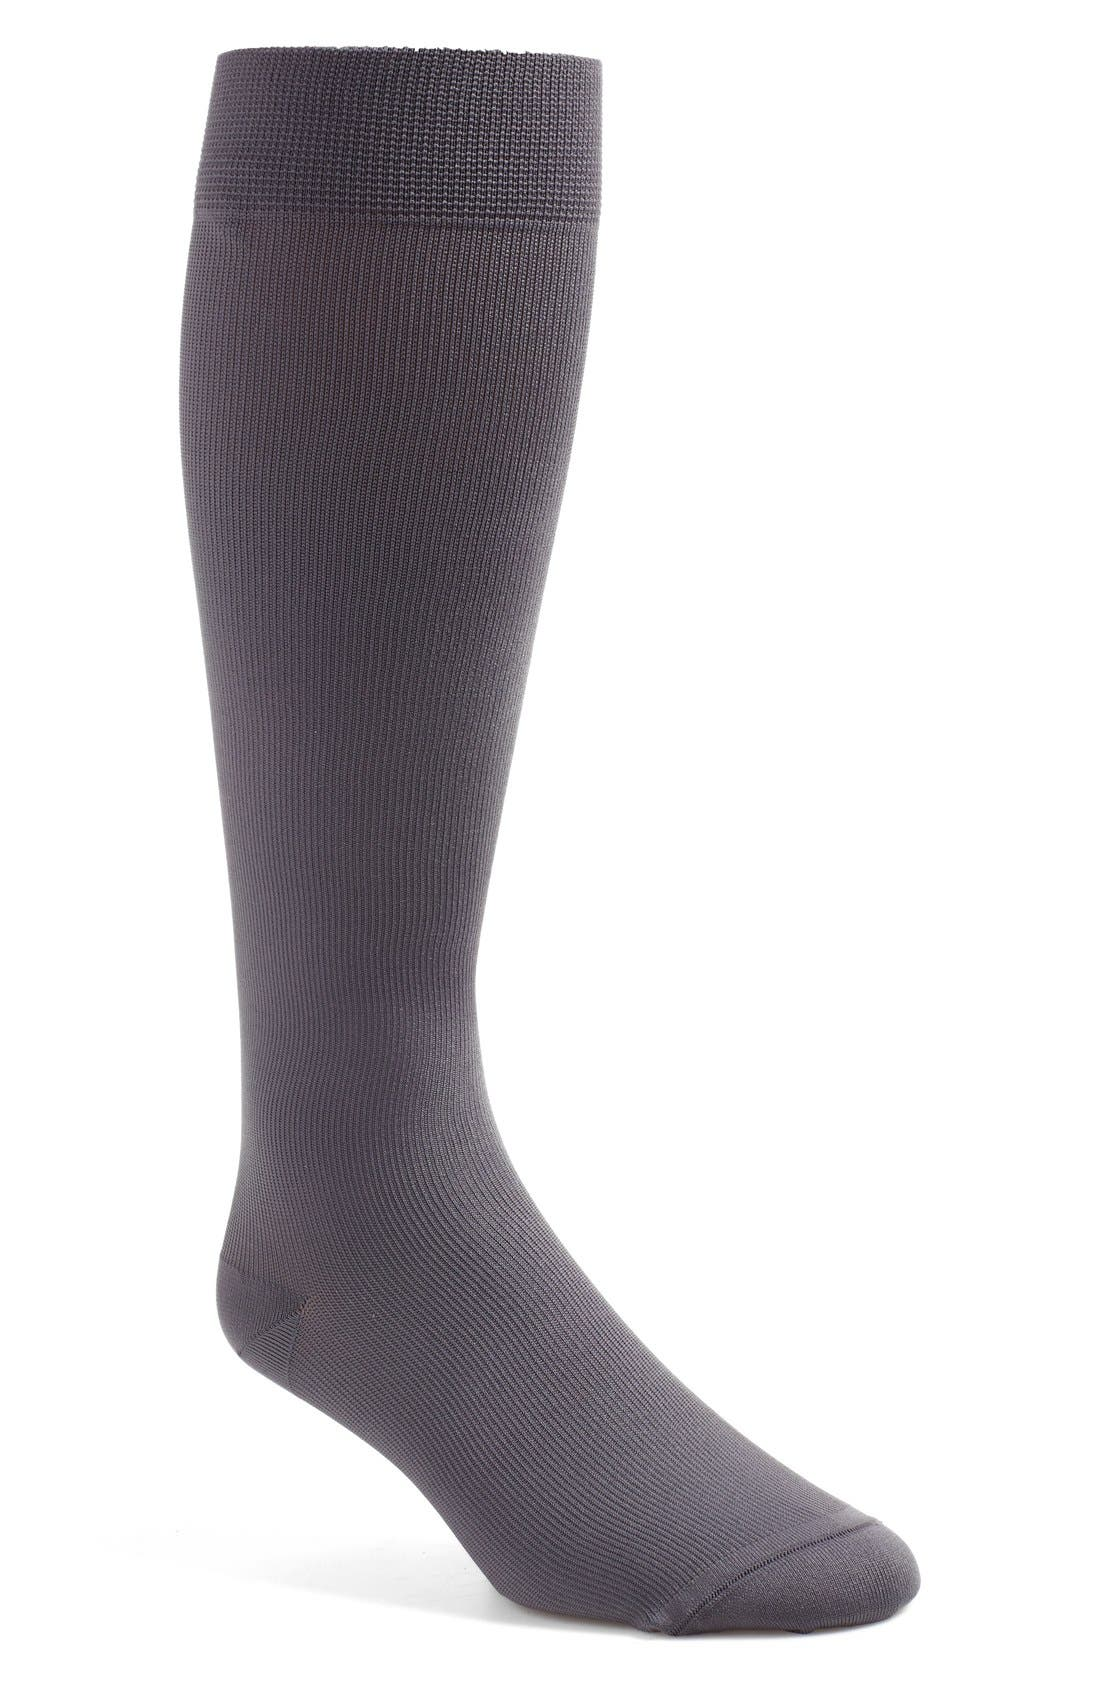 'Keynote' Over the Calf Socks,                             Main thumbnail 1, color,                             Grey